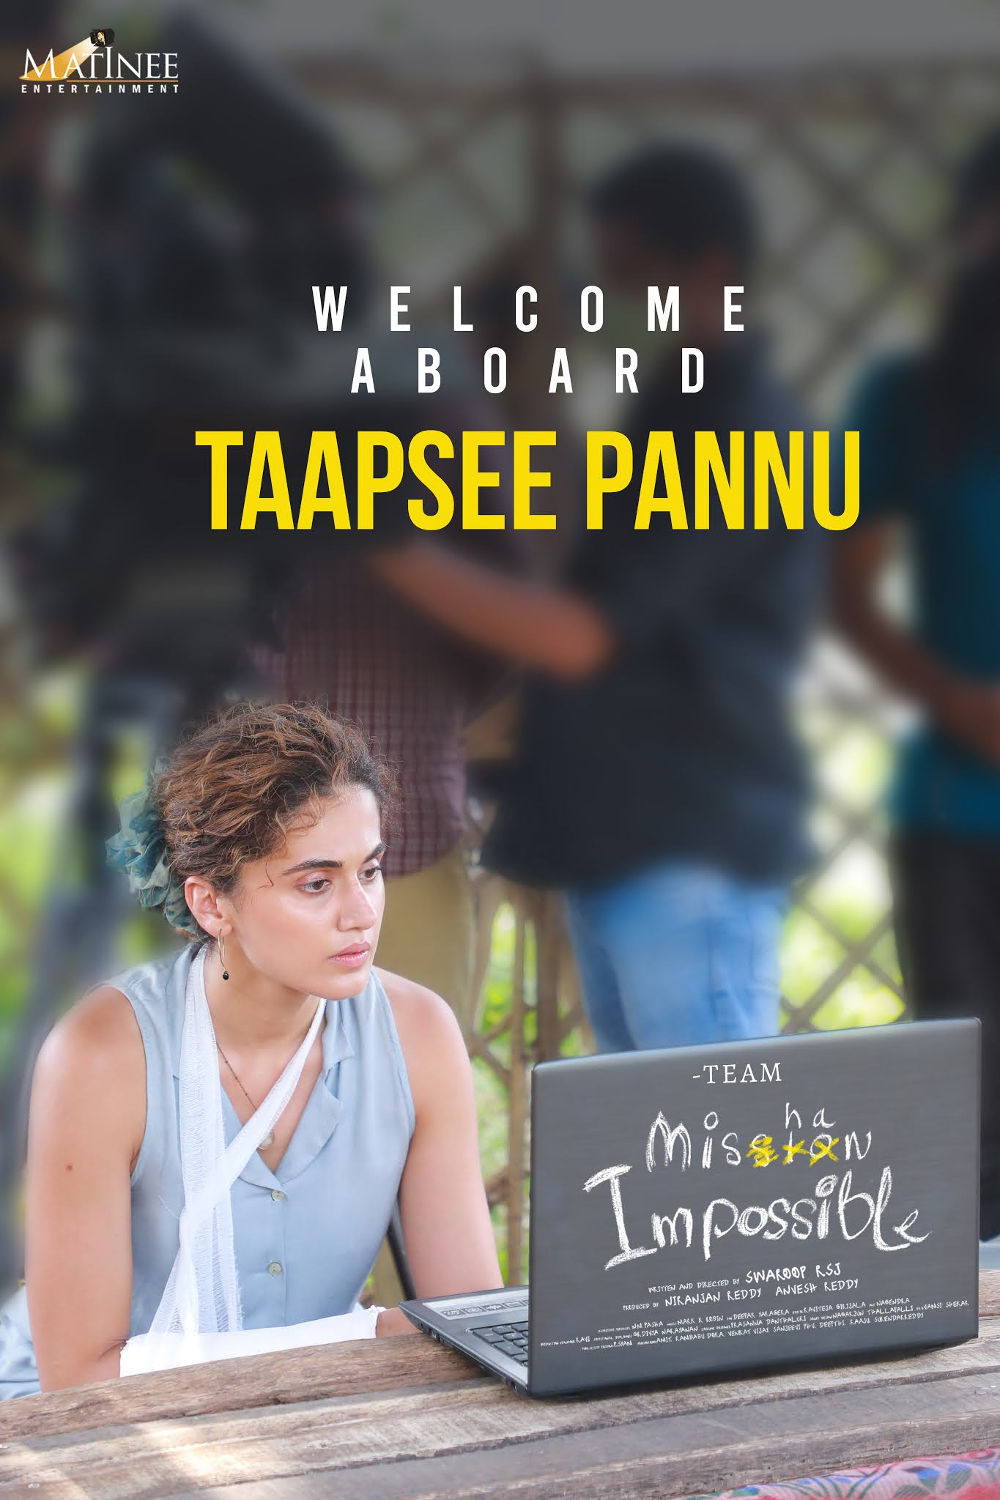 Welcme Taapsee Pannu in Mission lmpossible